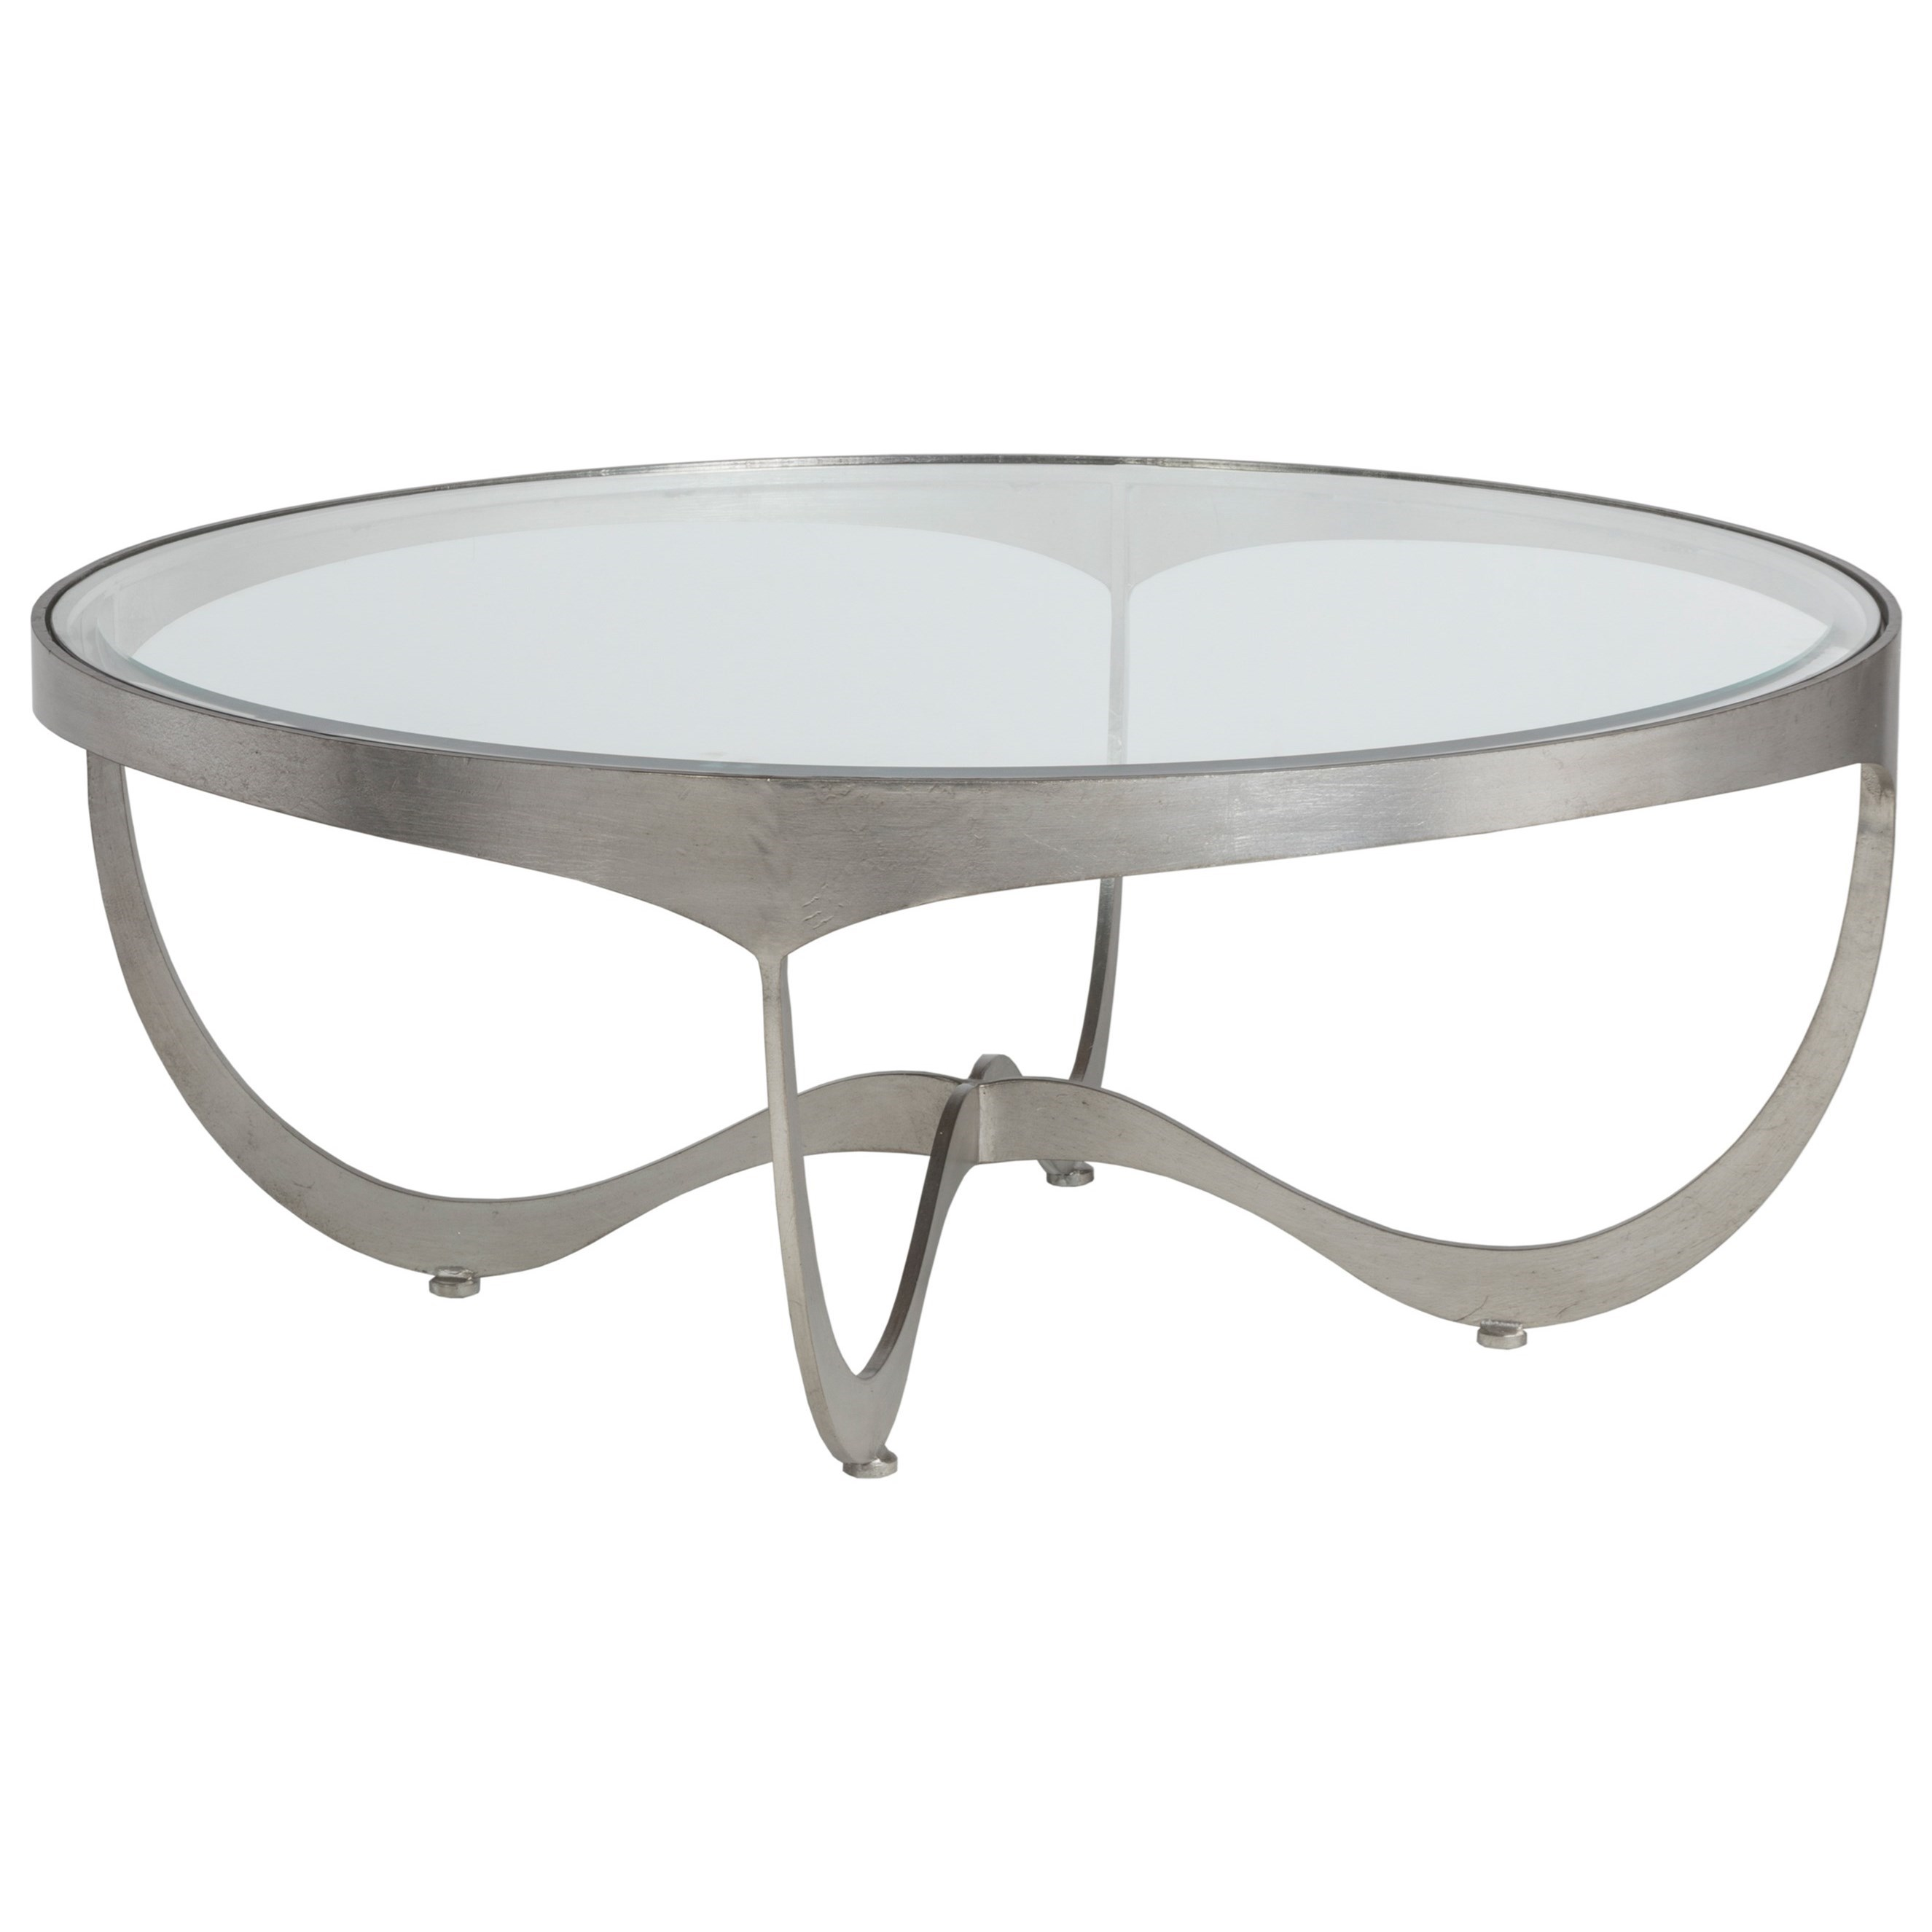 Metal Designs Sophie Round Cocktail Table by Artistica at Baer's Furniture